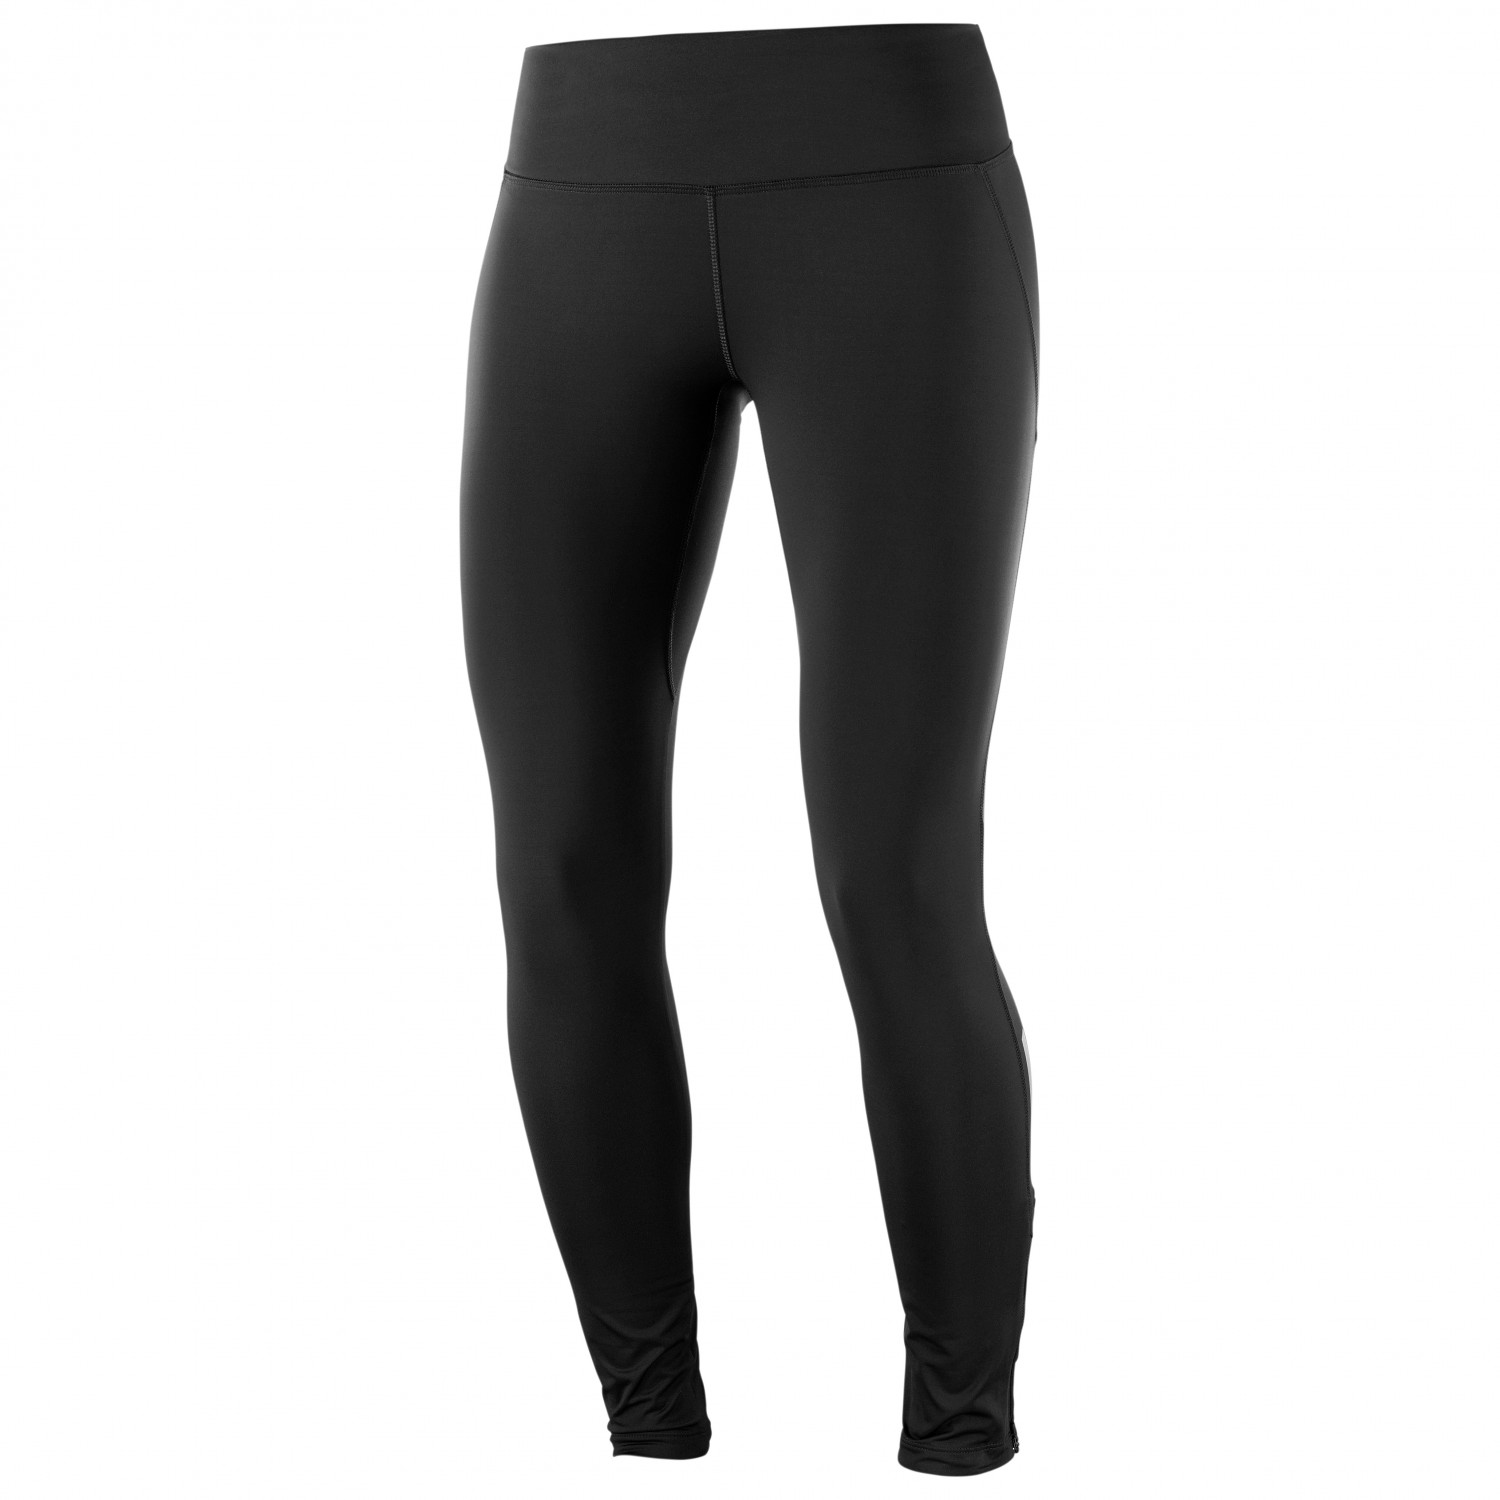 Salomon Women's Agile Warm Tight Lauftights